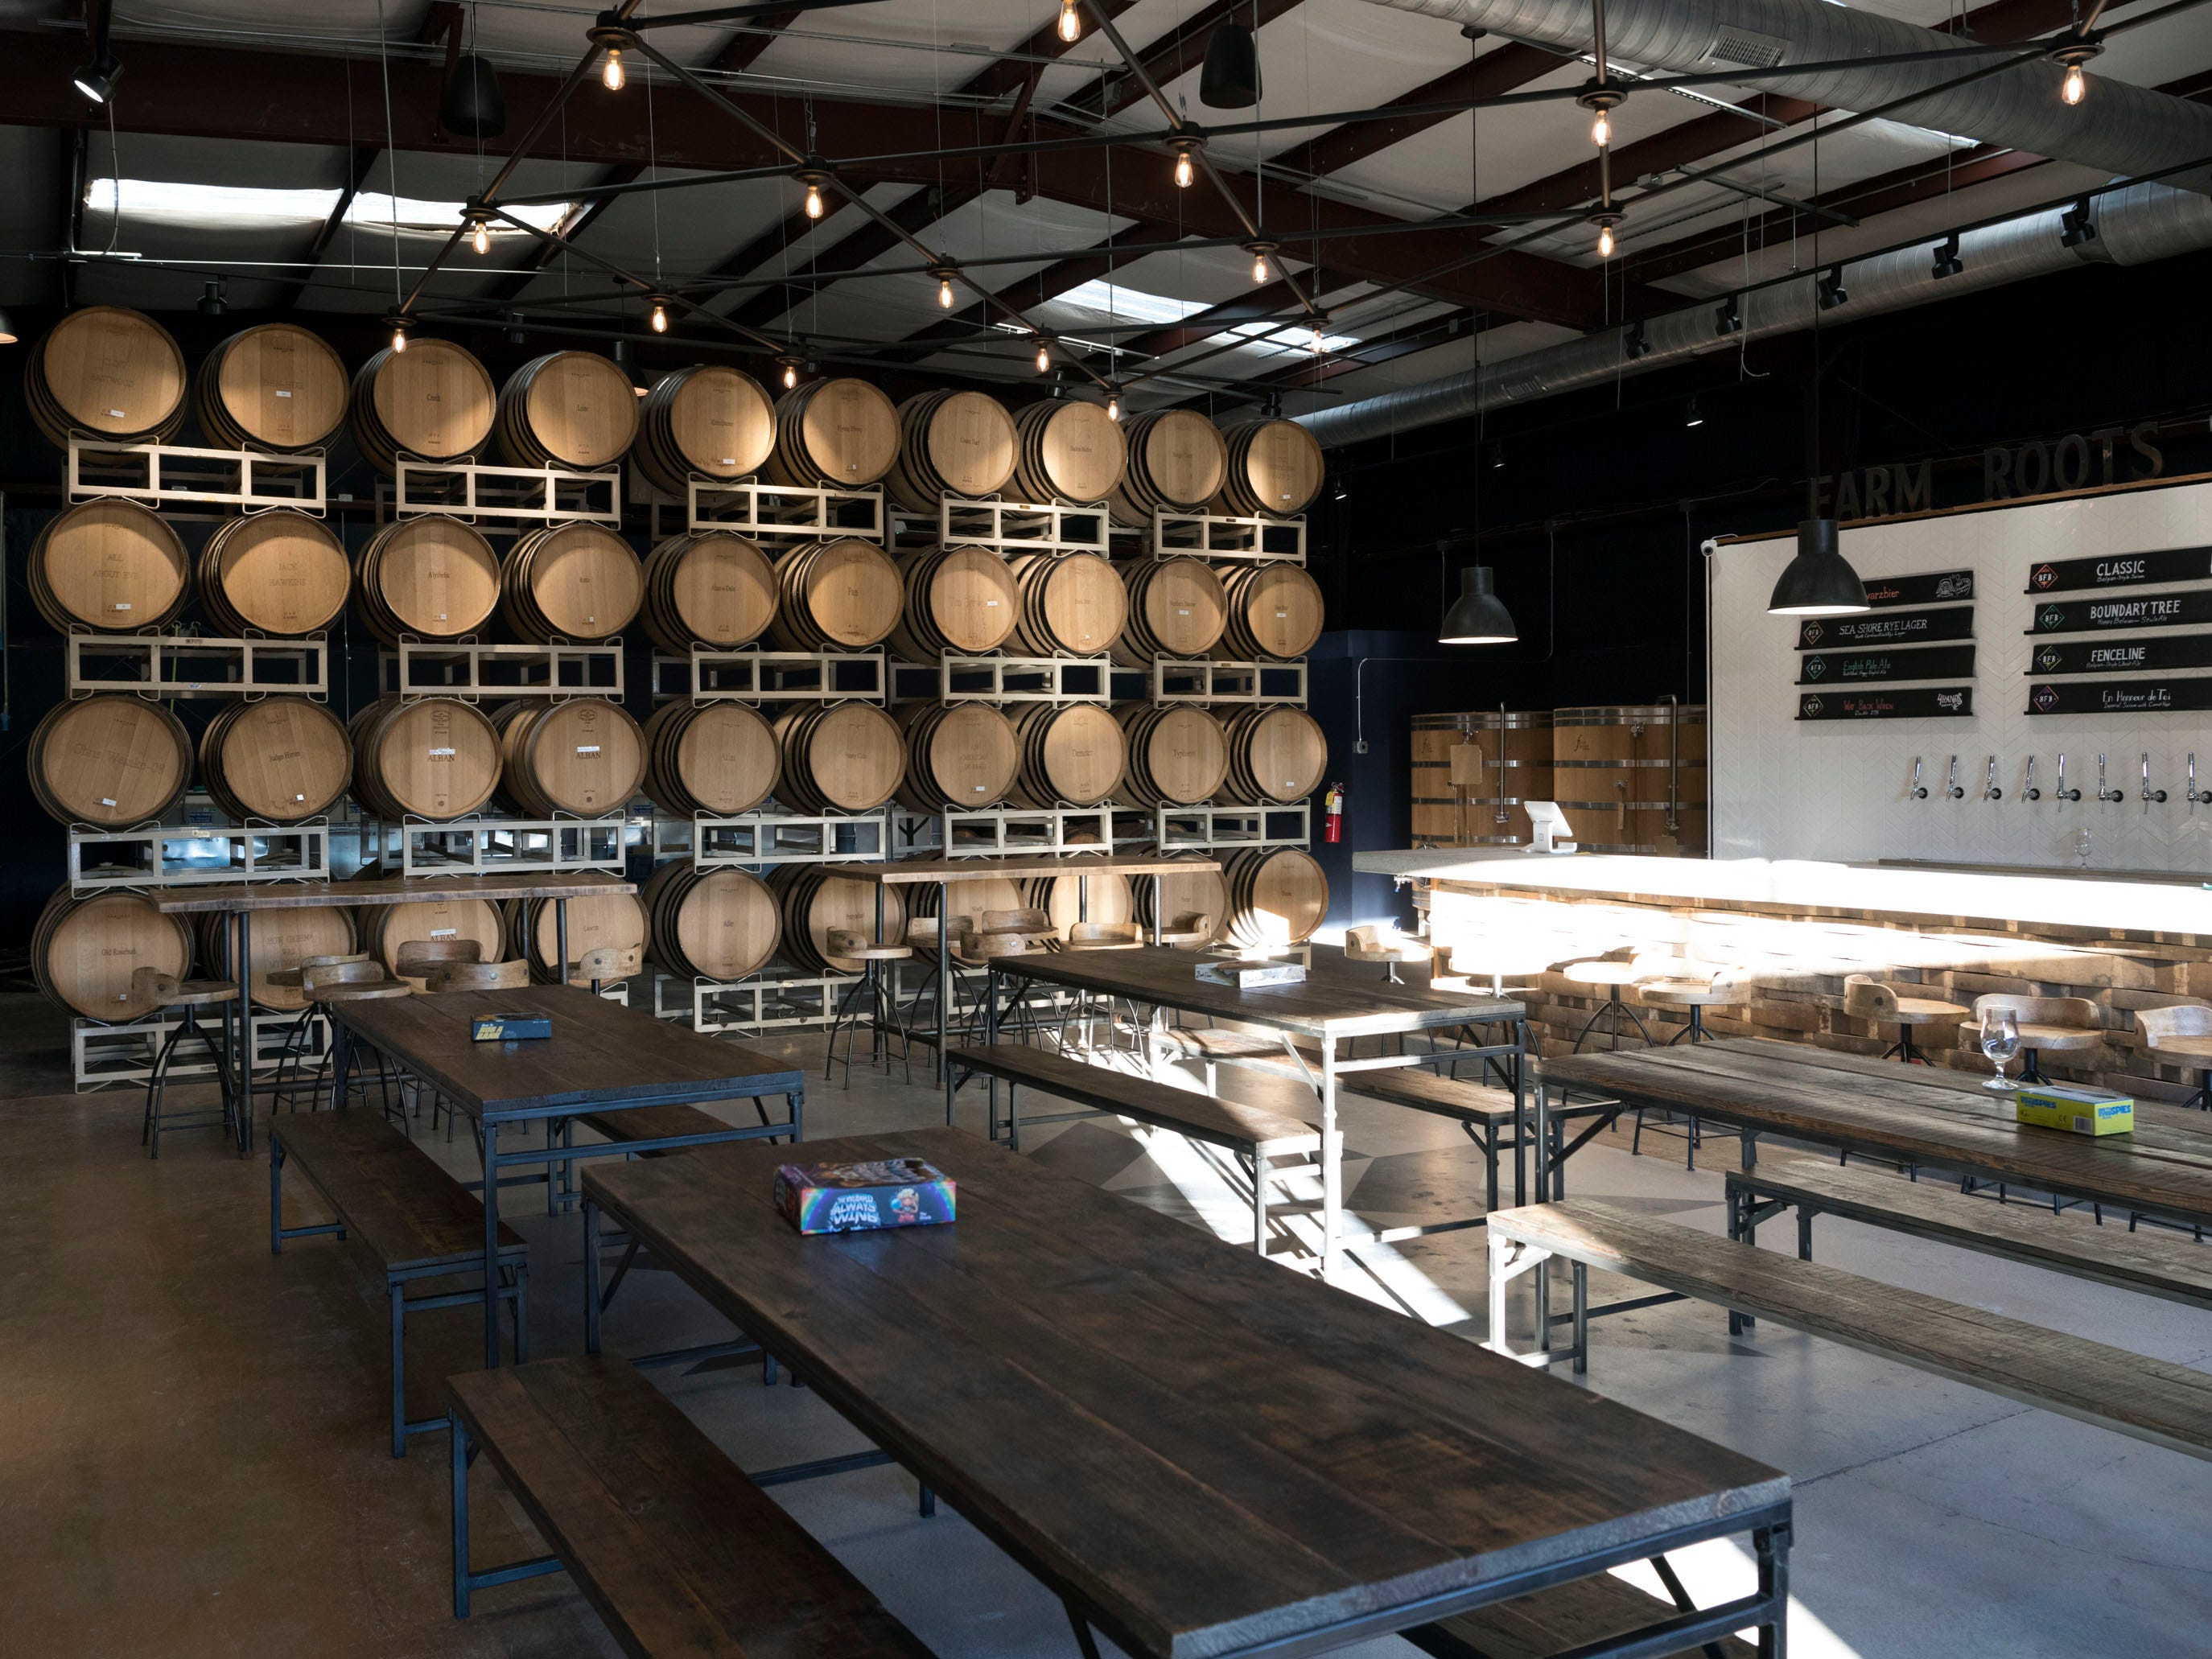 Seating area inside the taproom at the Blackberry Farm Brewery on Wednesday, January 9, 2019.